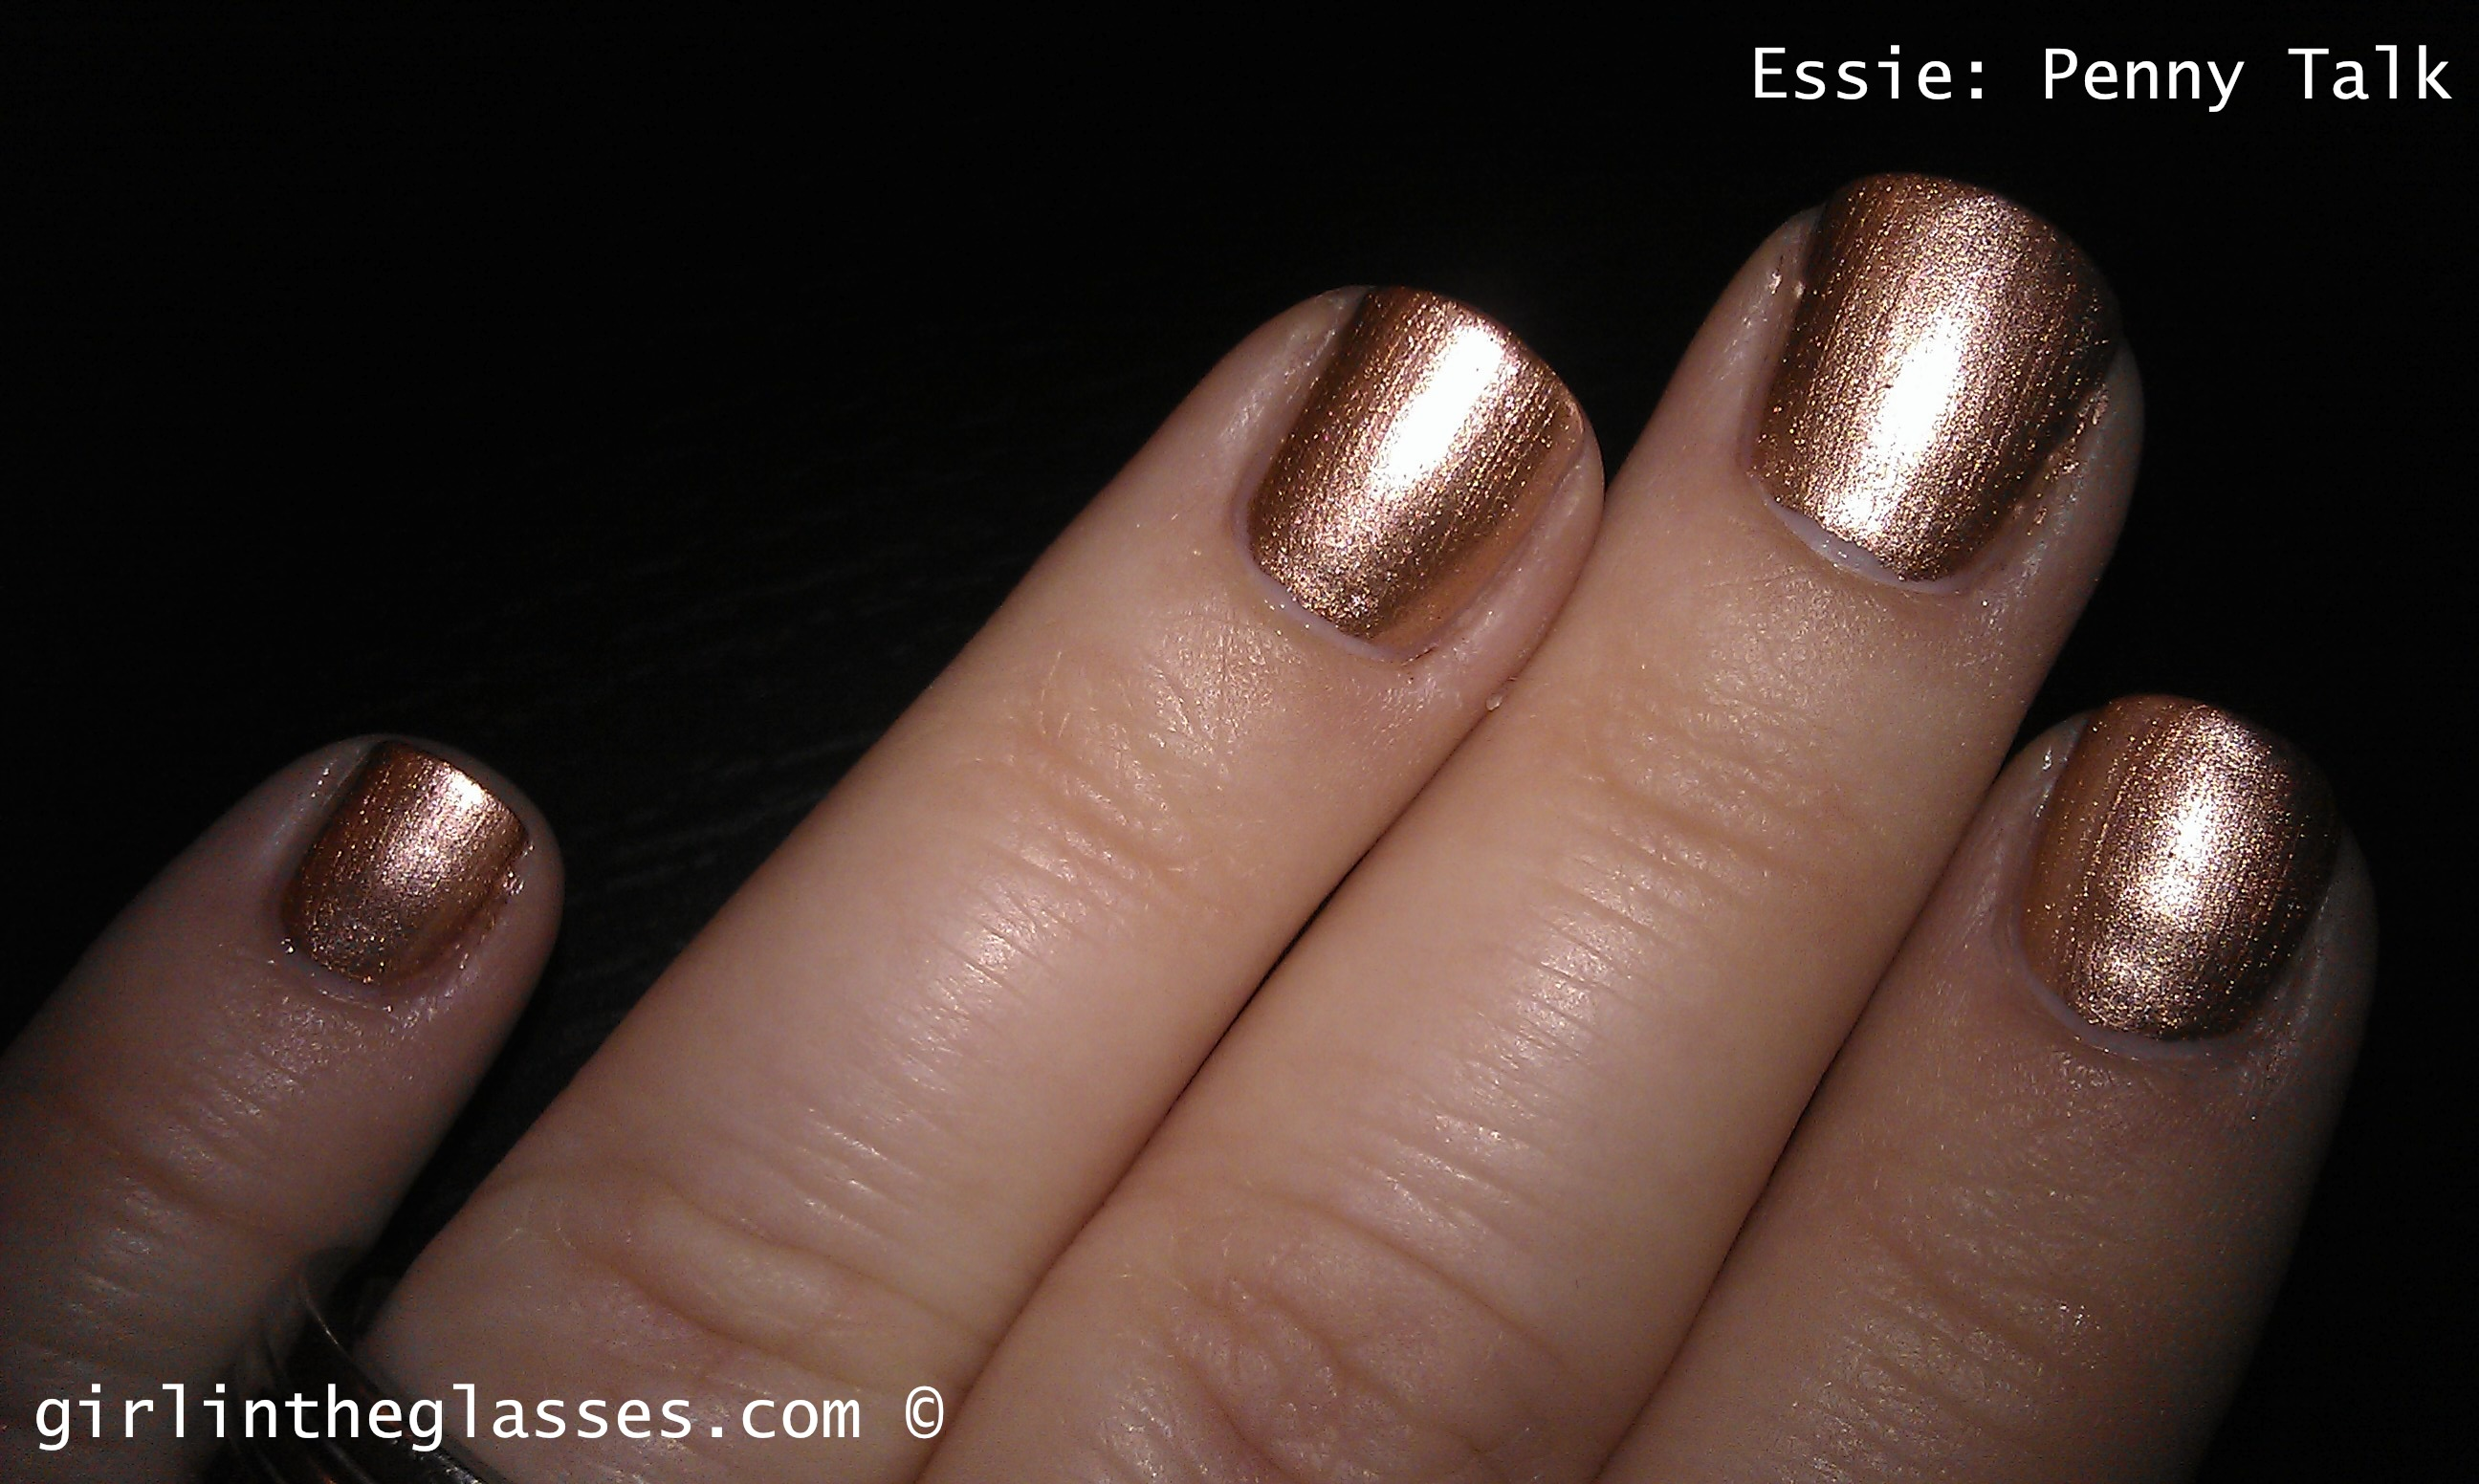 where to find essie in germany   girlintheglasses